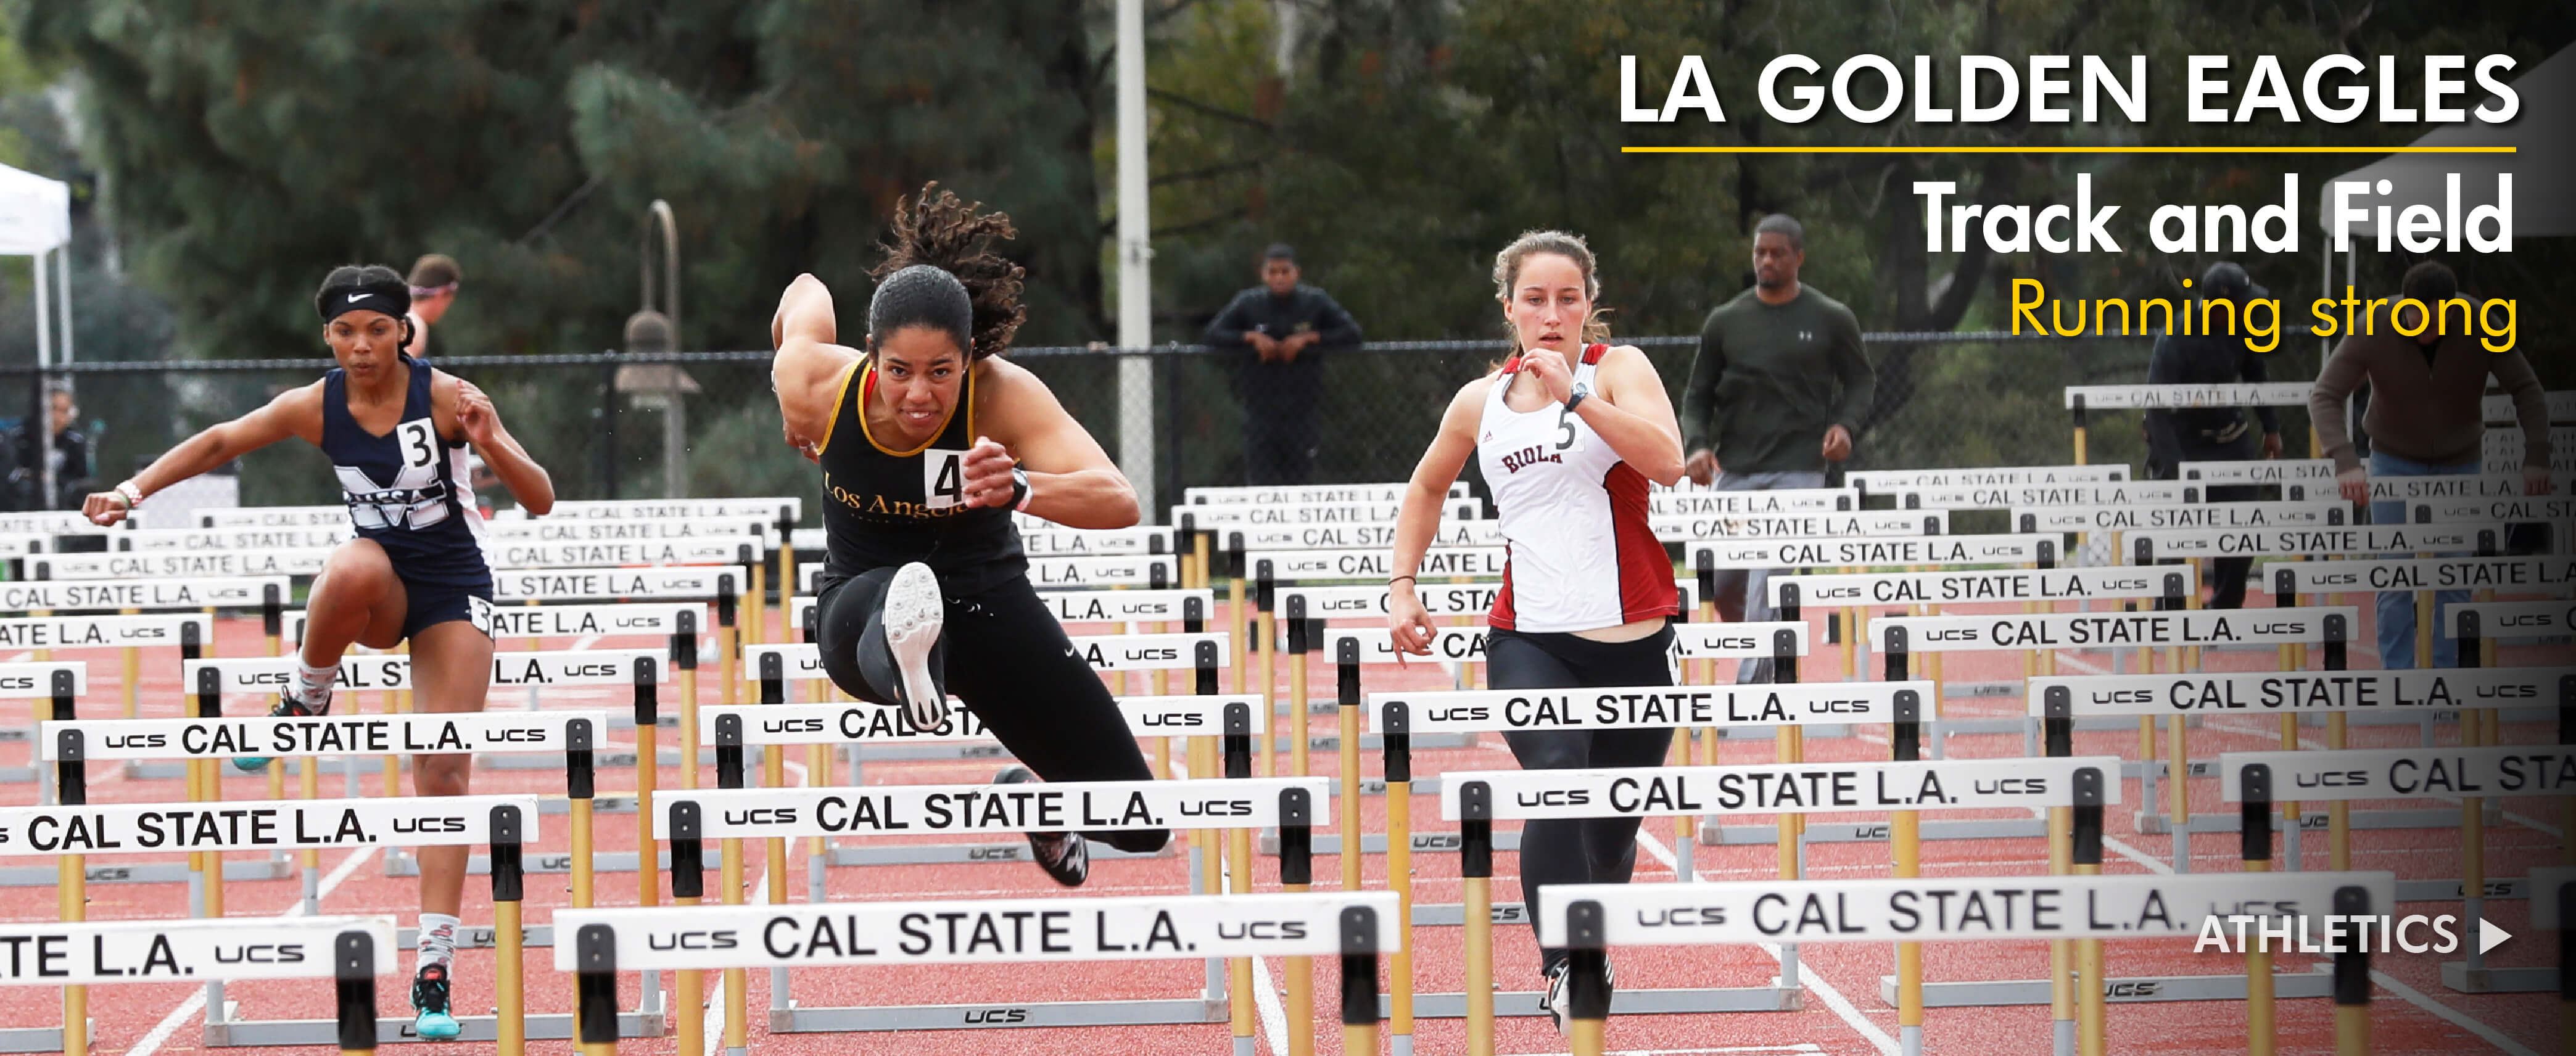 Track and Field Running Strong